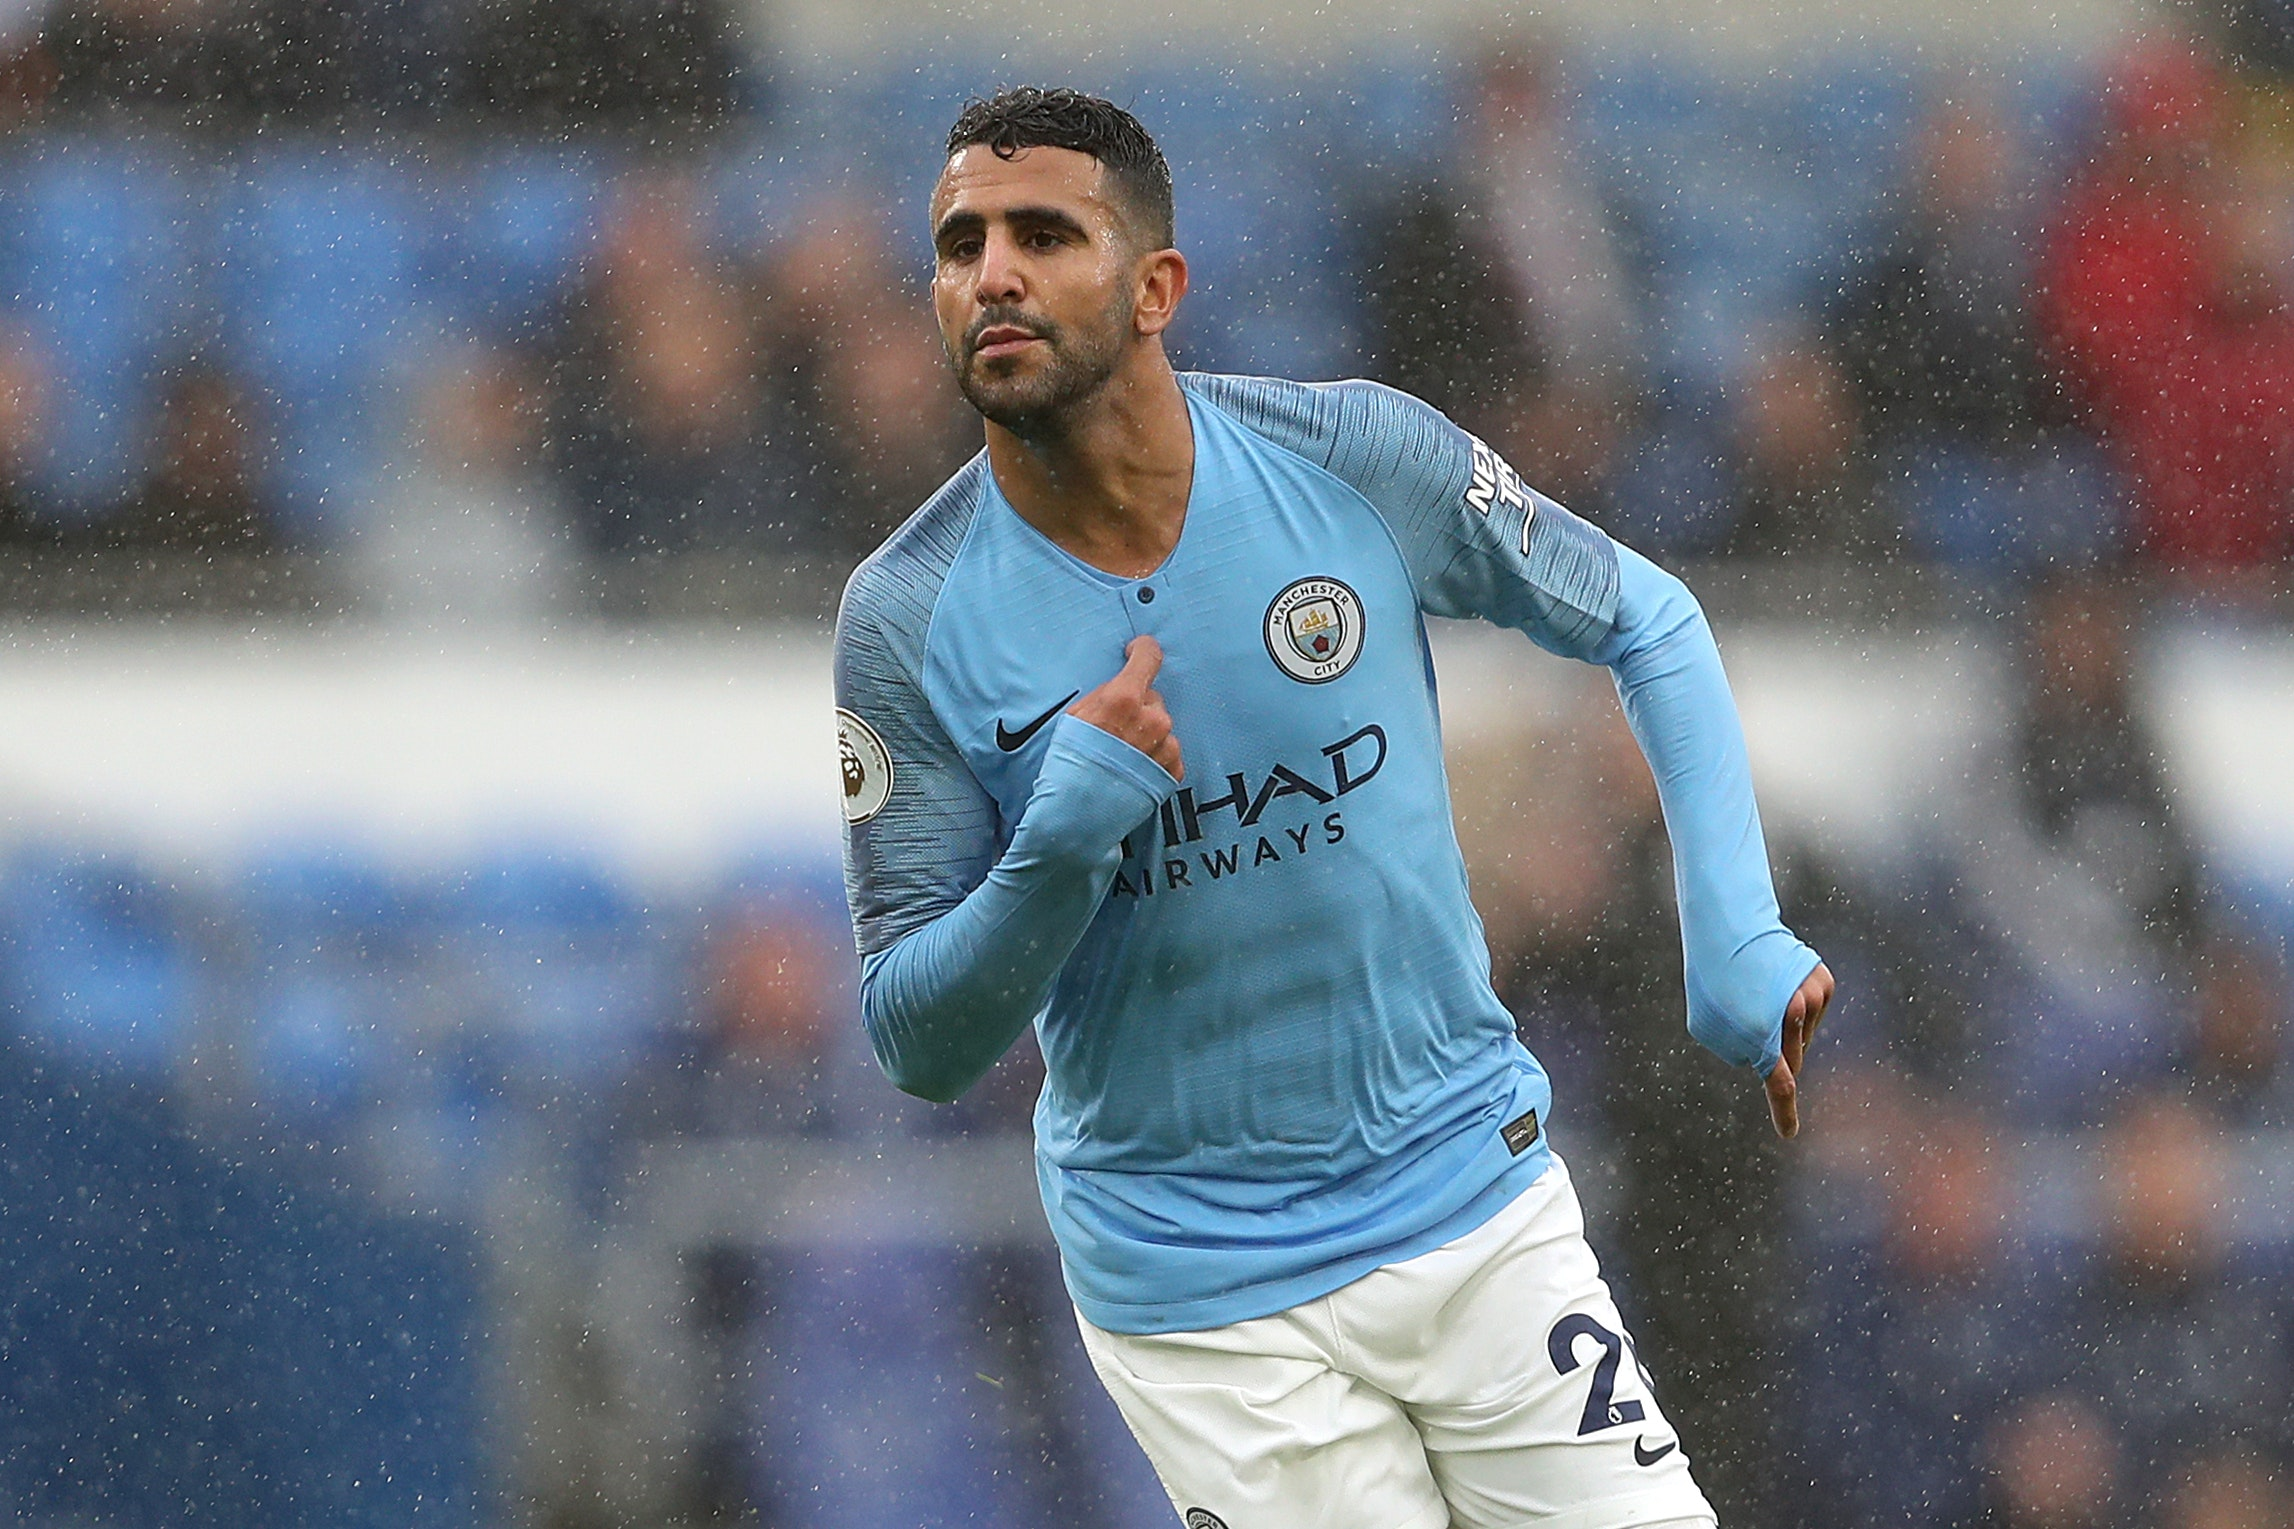 Manchester City's Riyad Mahrez celebrates scoring his side's fifth goal at Cardiff